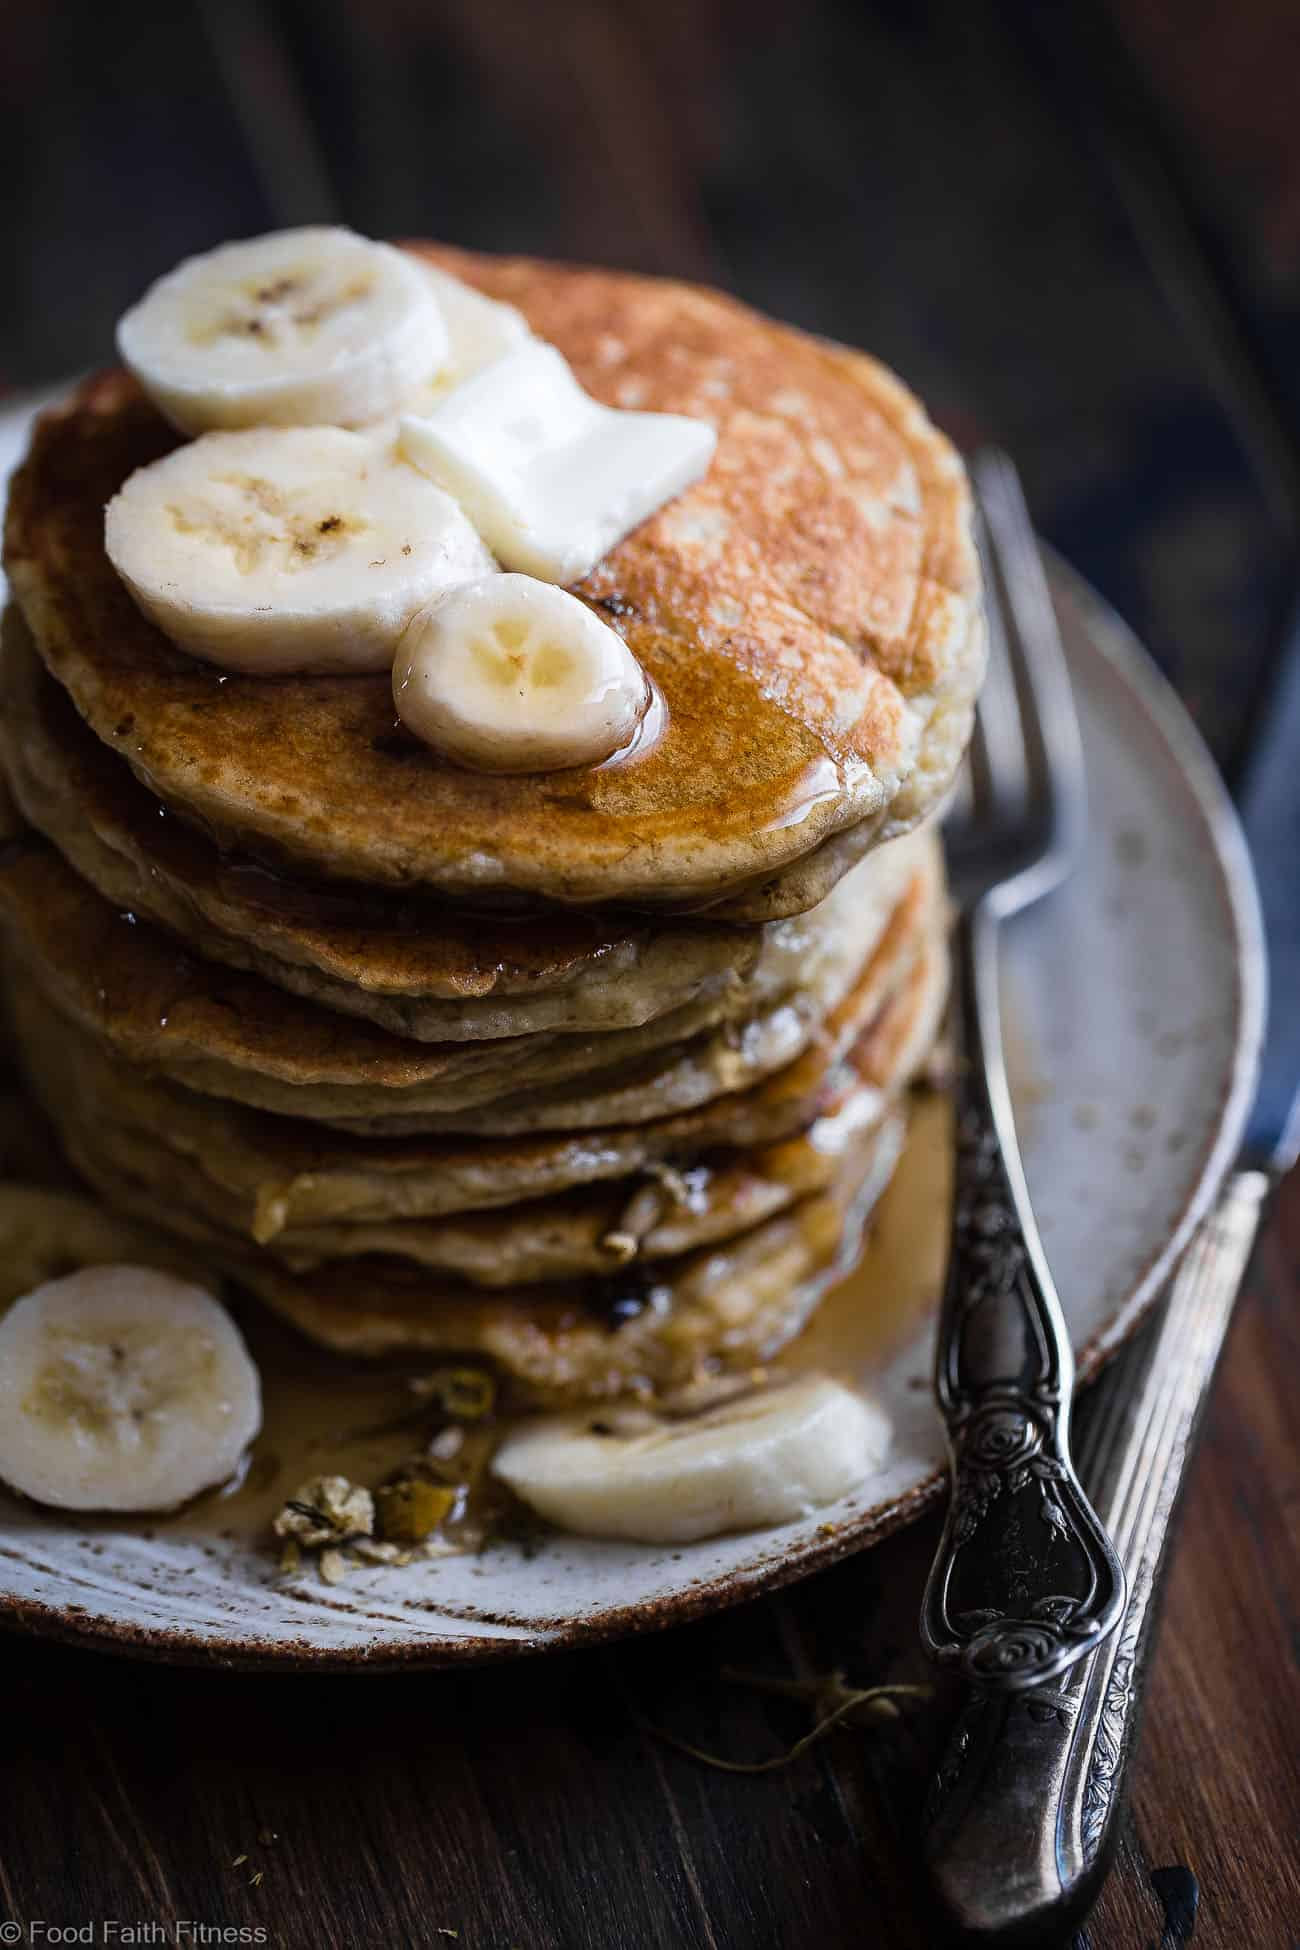 Easy Paleo Banana Pancakes with Coconut Flour - These quick and easy banana pancakes are naturally sweetened, gluten, grain and dairy free and SO light and fluffy! The perfect healthy start to your day or weekend breakfast! | Foodfaithfitness.com | @FoodFaithFit